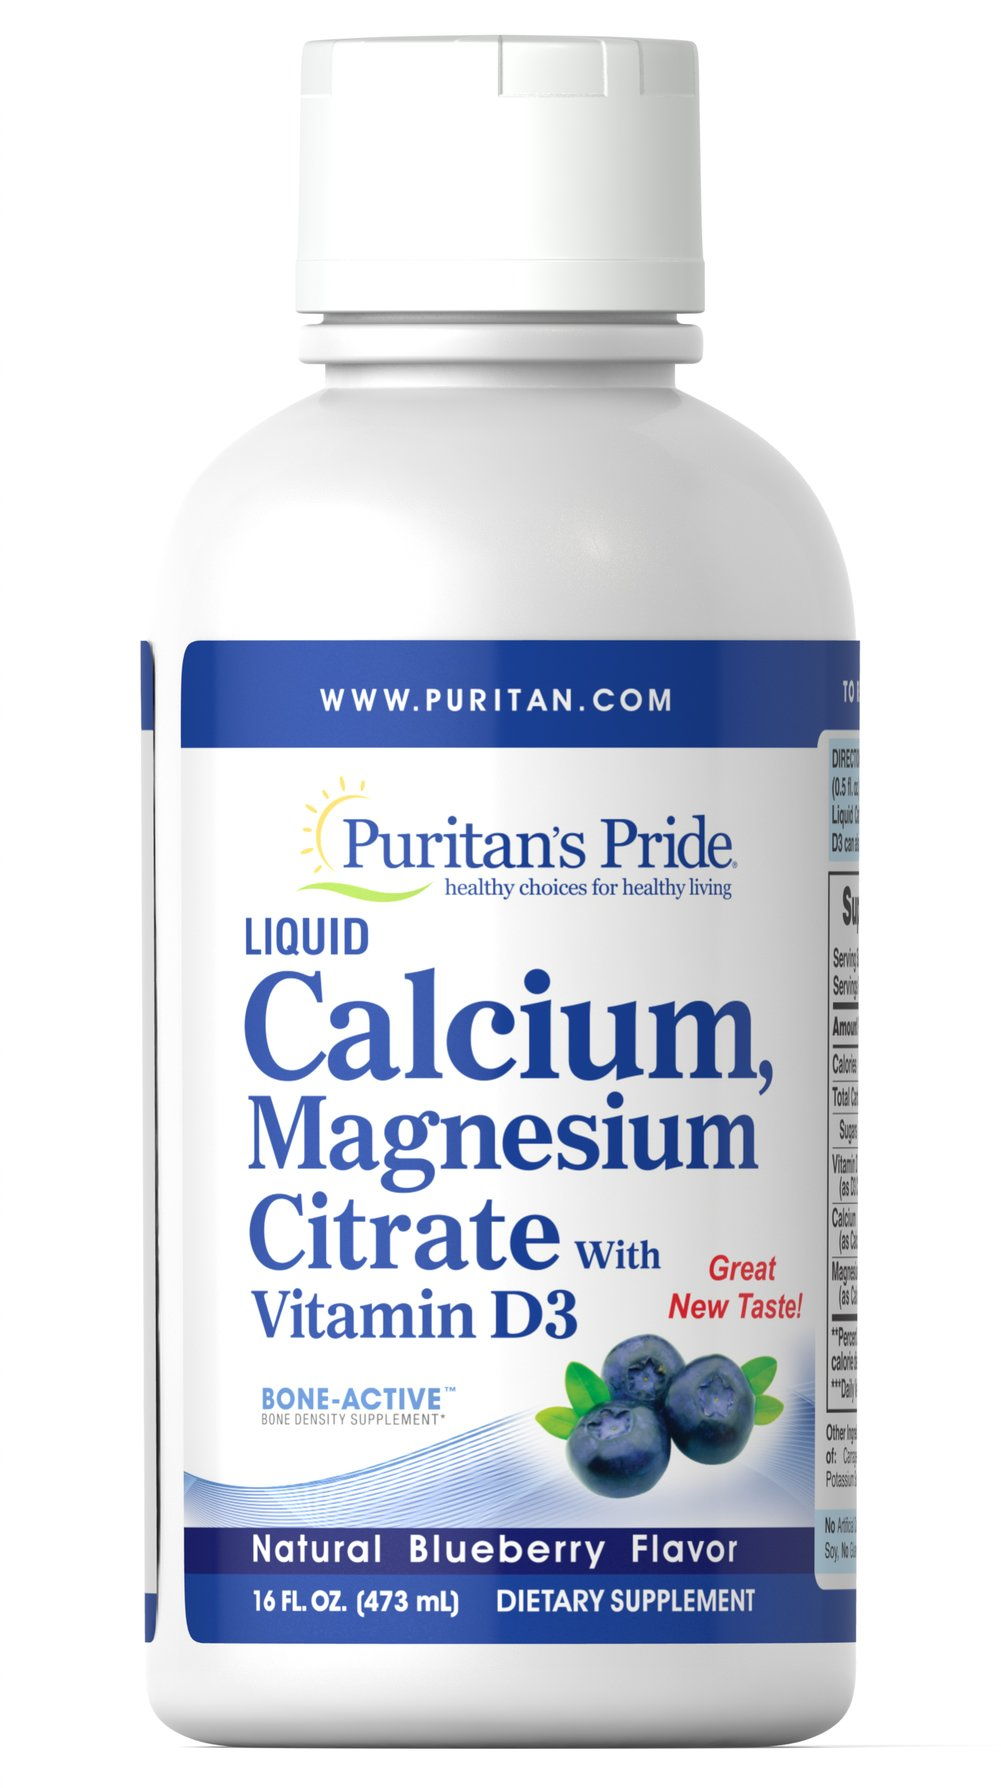 Calcium magnesium vitamin d3 benefits